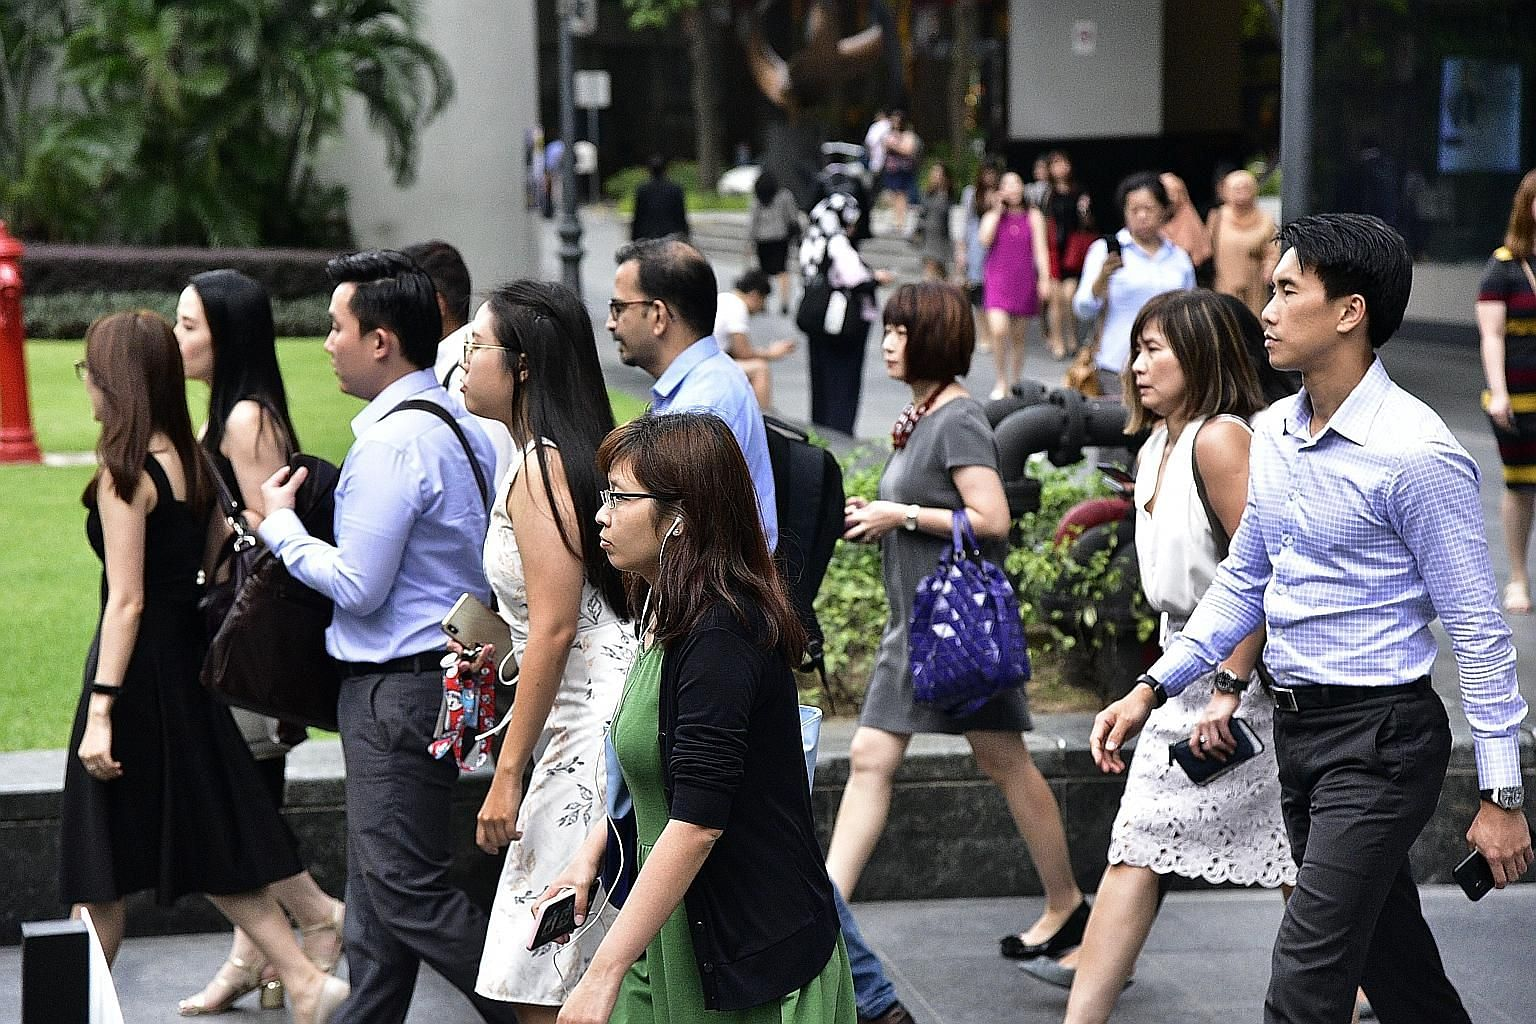 A question of whether economic growth and job creation have benefited Singaporeans more than foreigners was raised in Parliament this month, putting the spotlight on how firms here hire and promote workers.